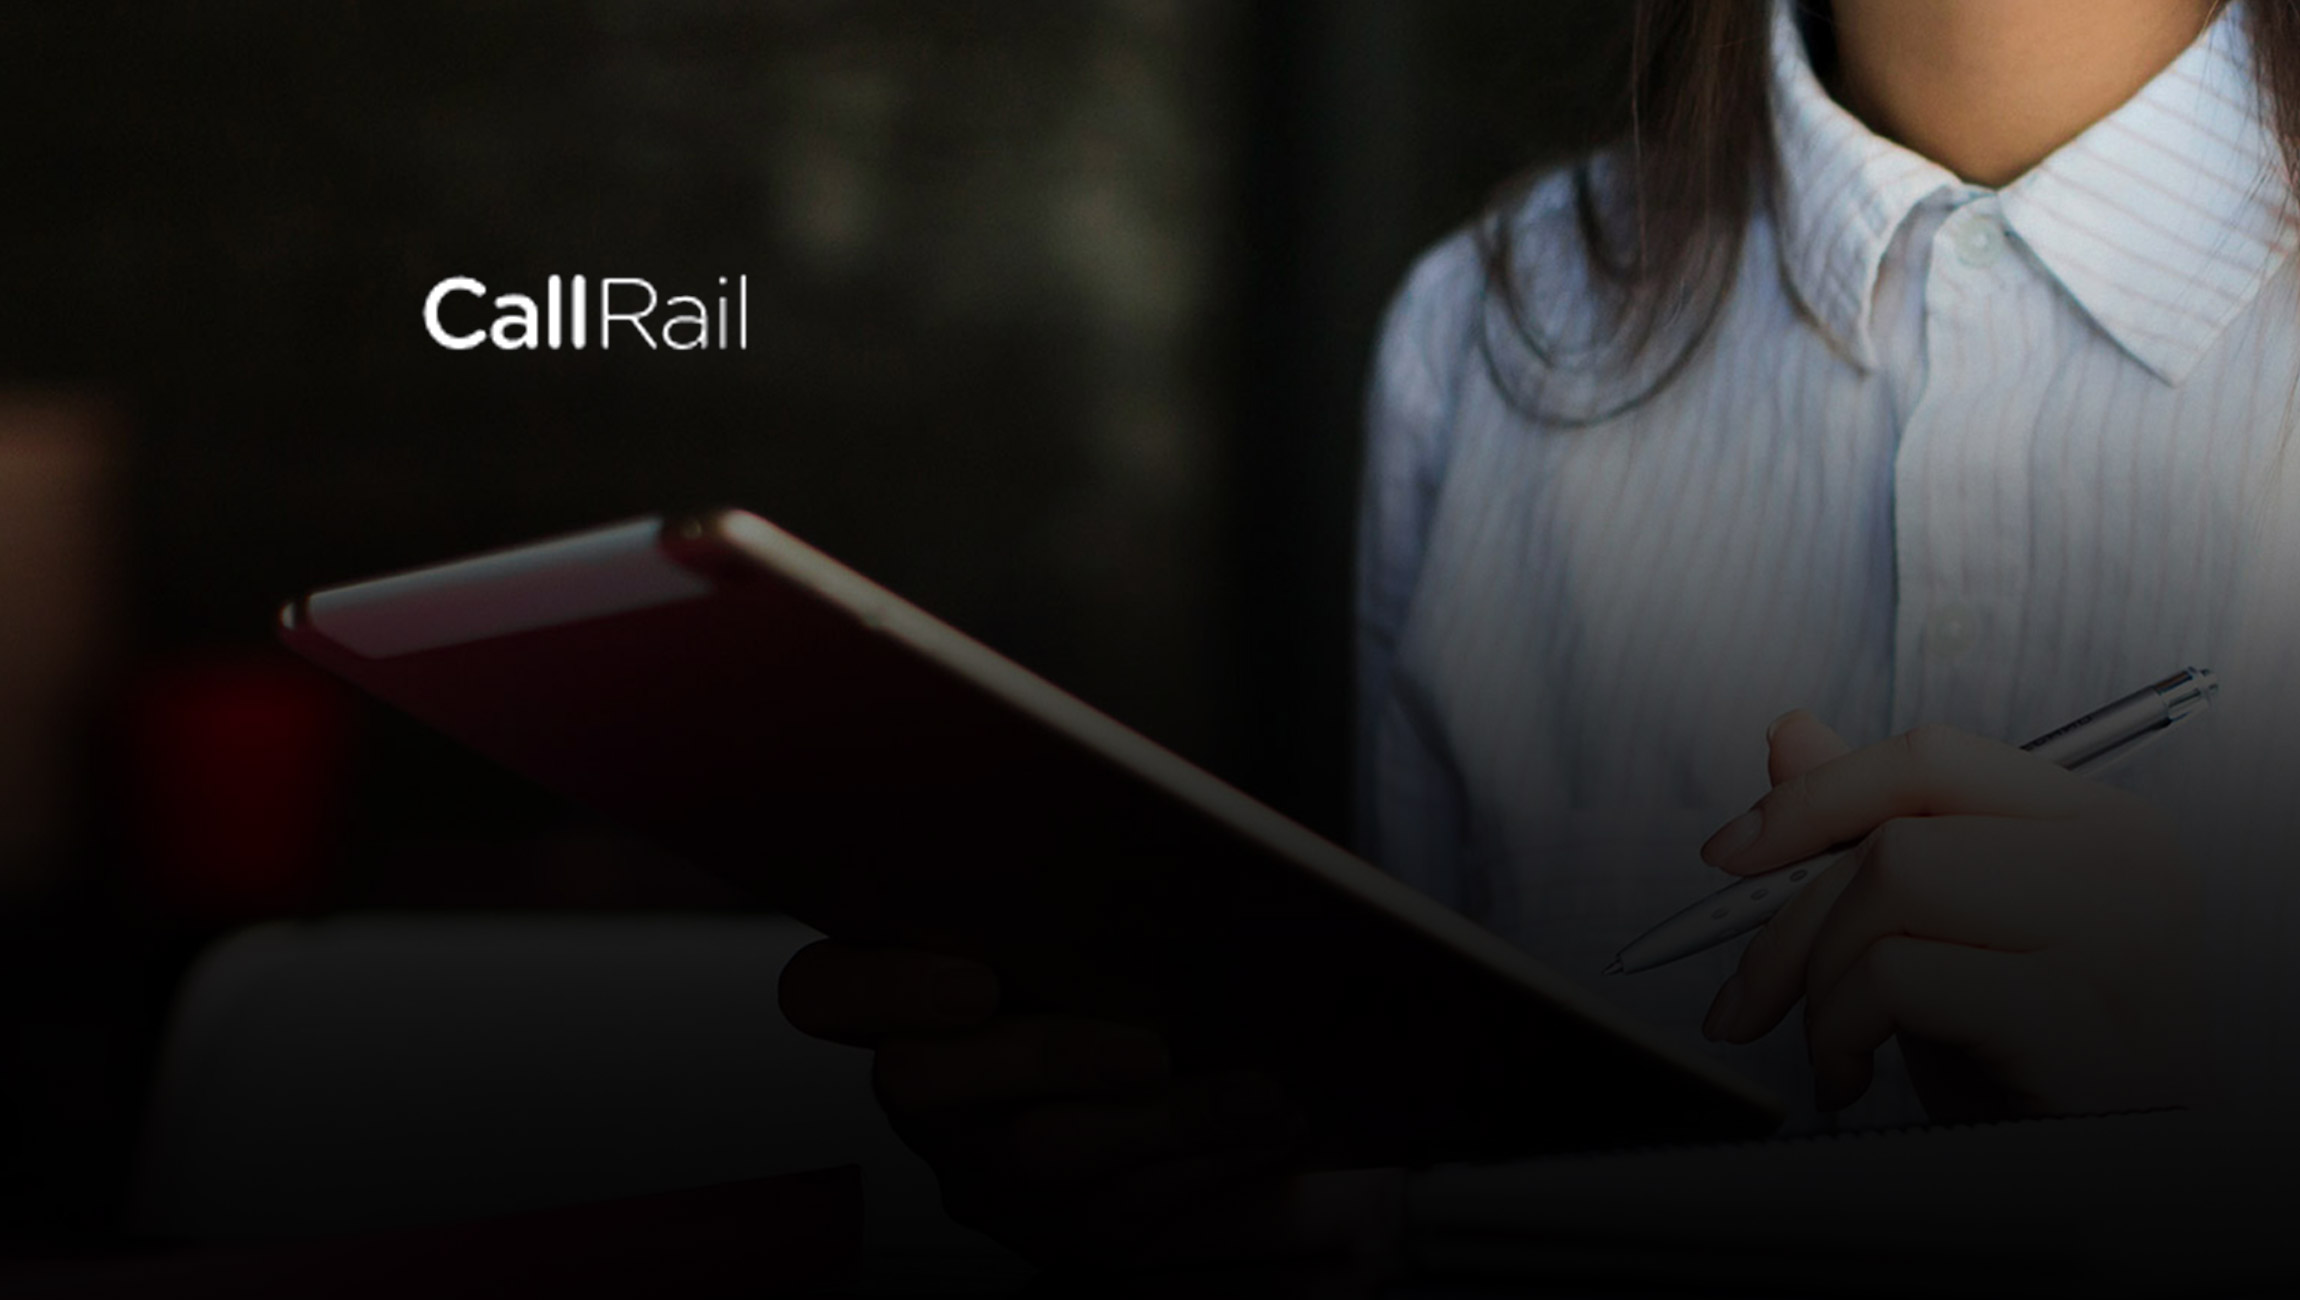 With CallRail's New Lead Center, SMBs Will Never Miss a Lead Again